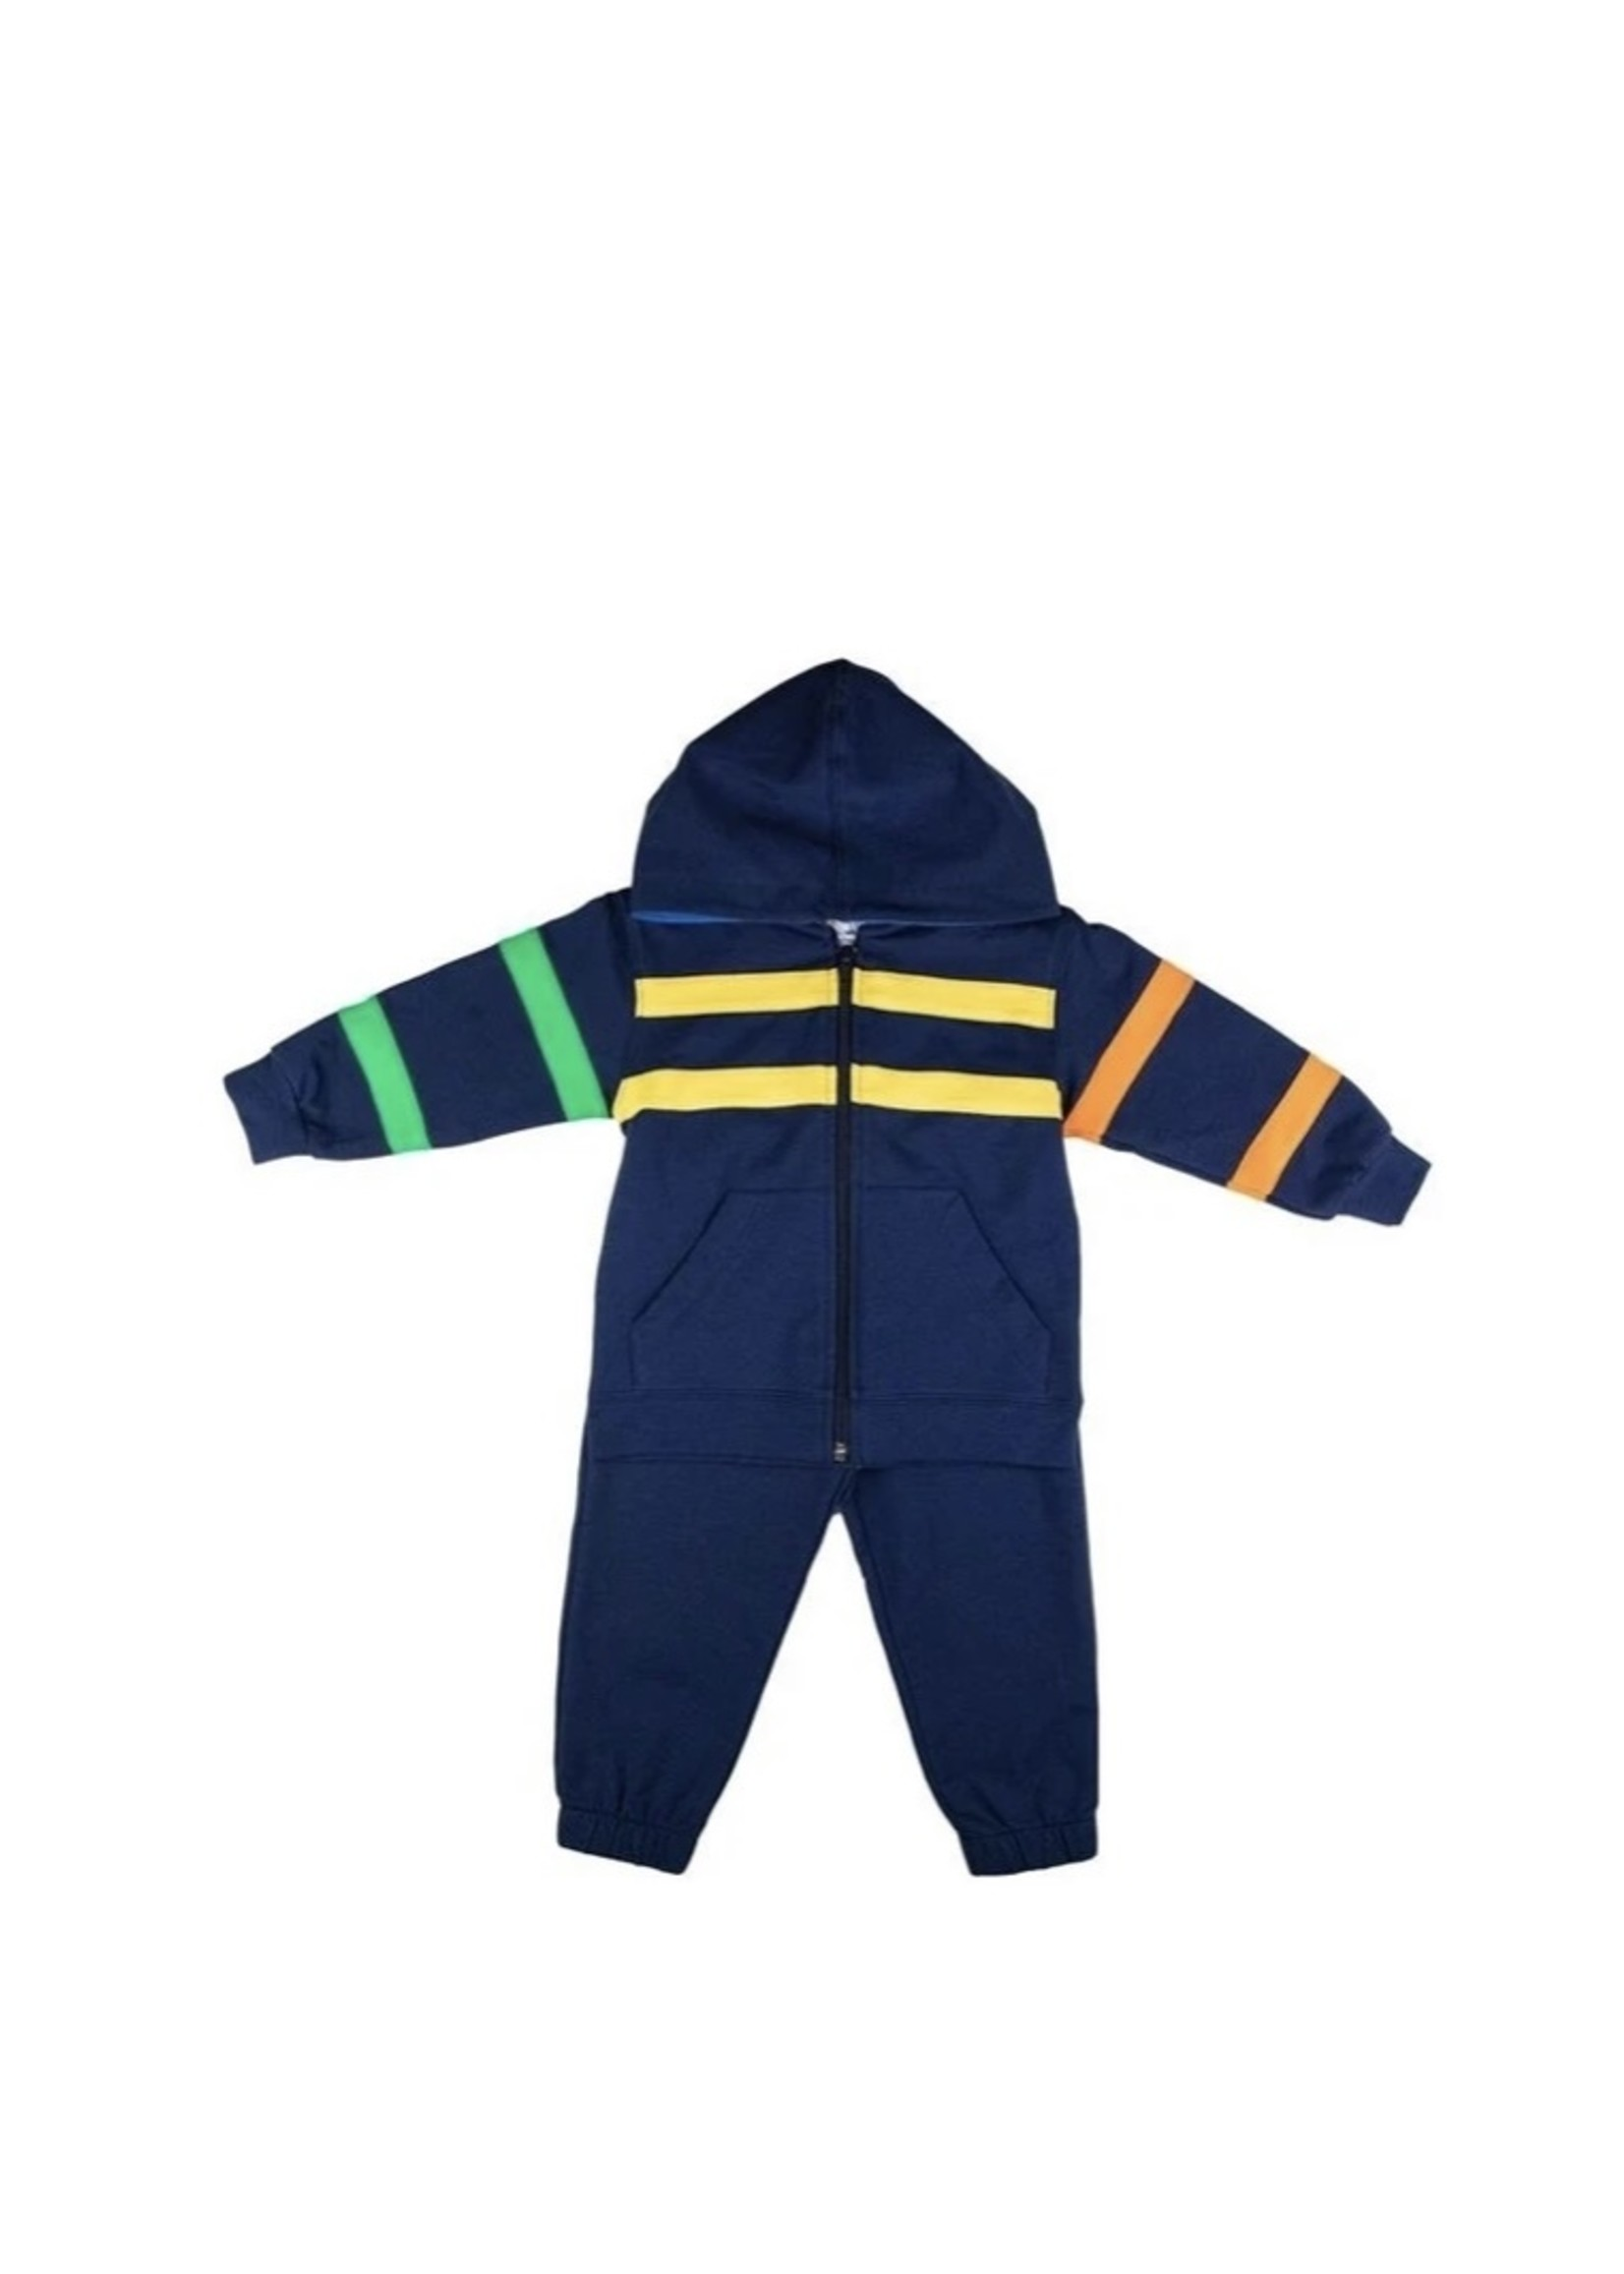 Hoodie Set with Color Bands